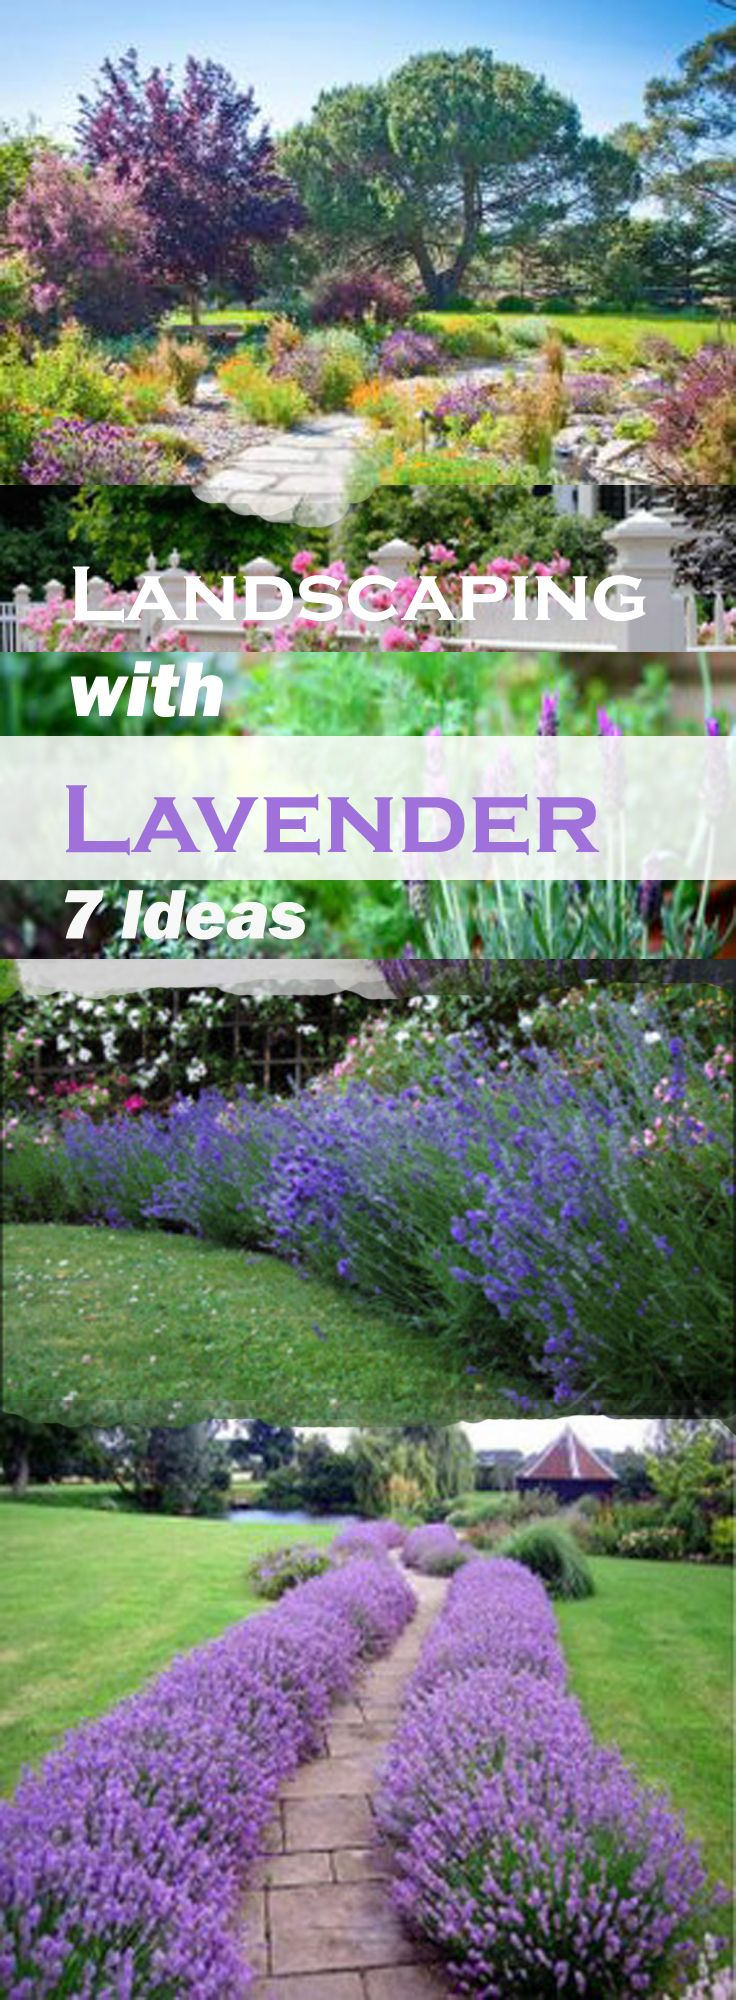 Landscaping with Lavender #dan330 http://livedan330.com/2015/08/08/7-ways-use-lavender-garden-design/